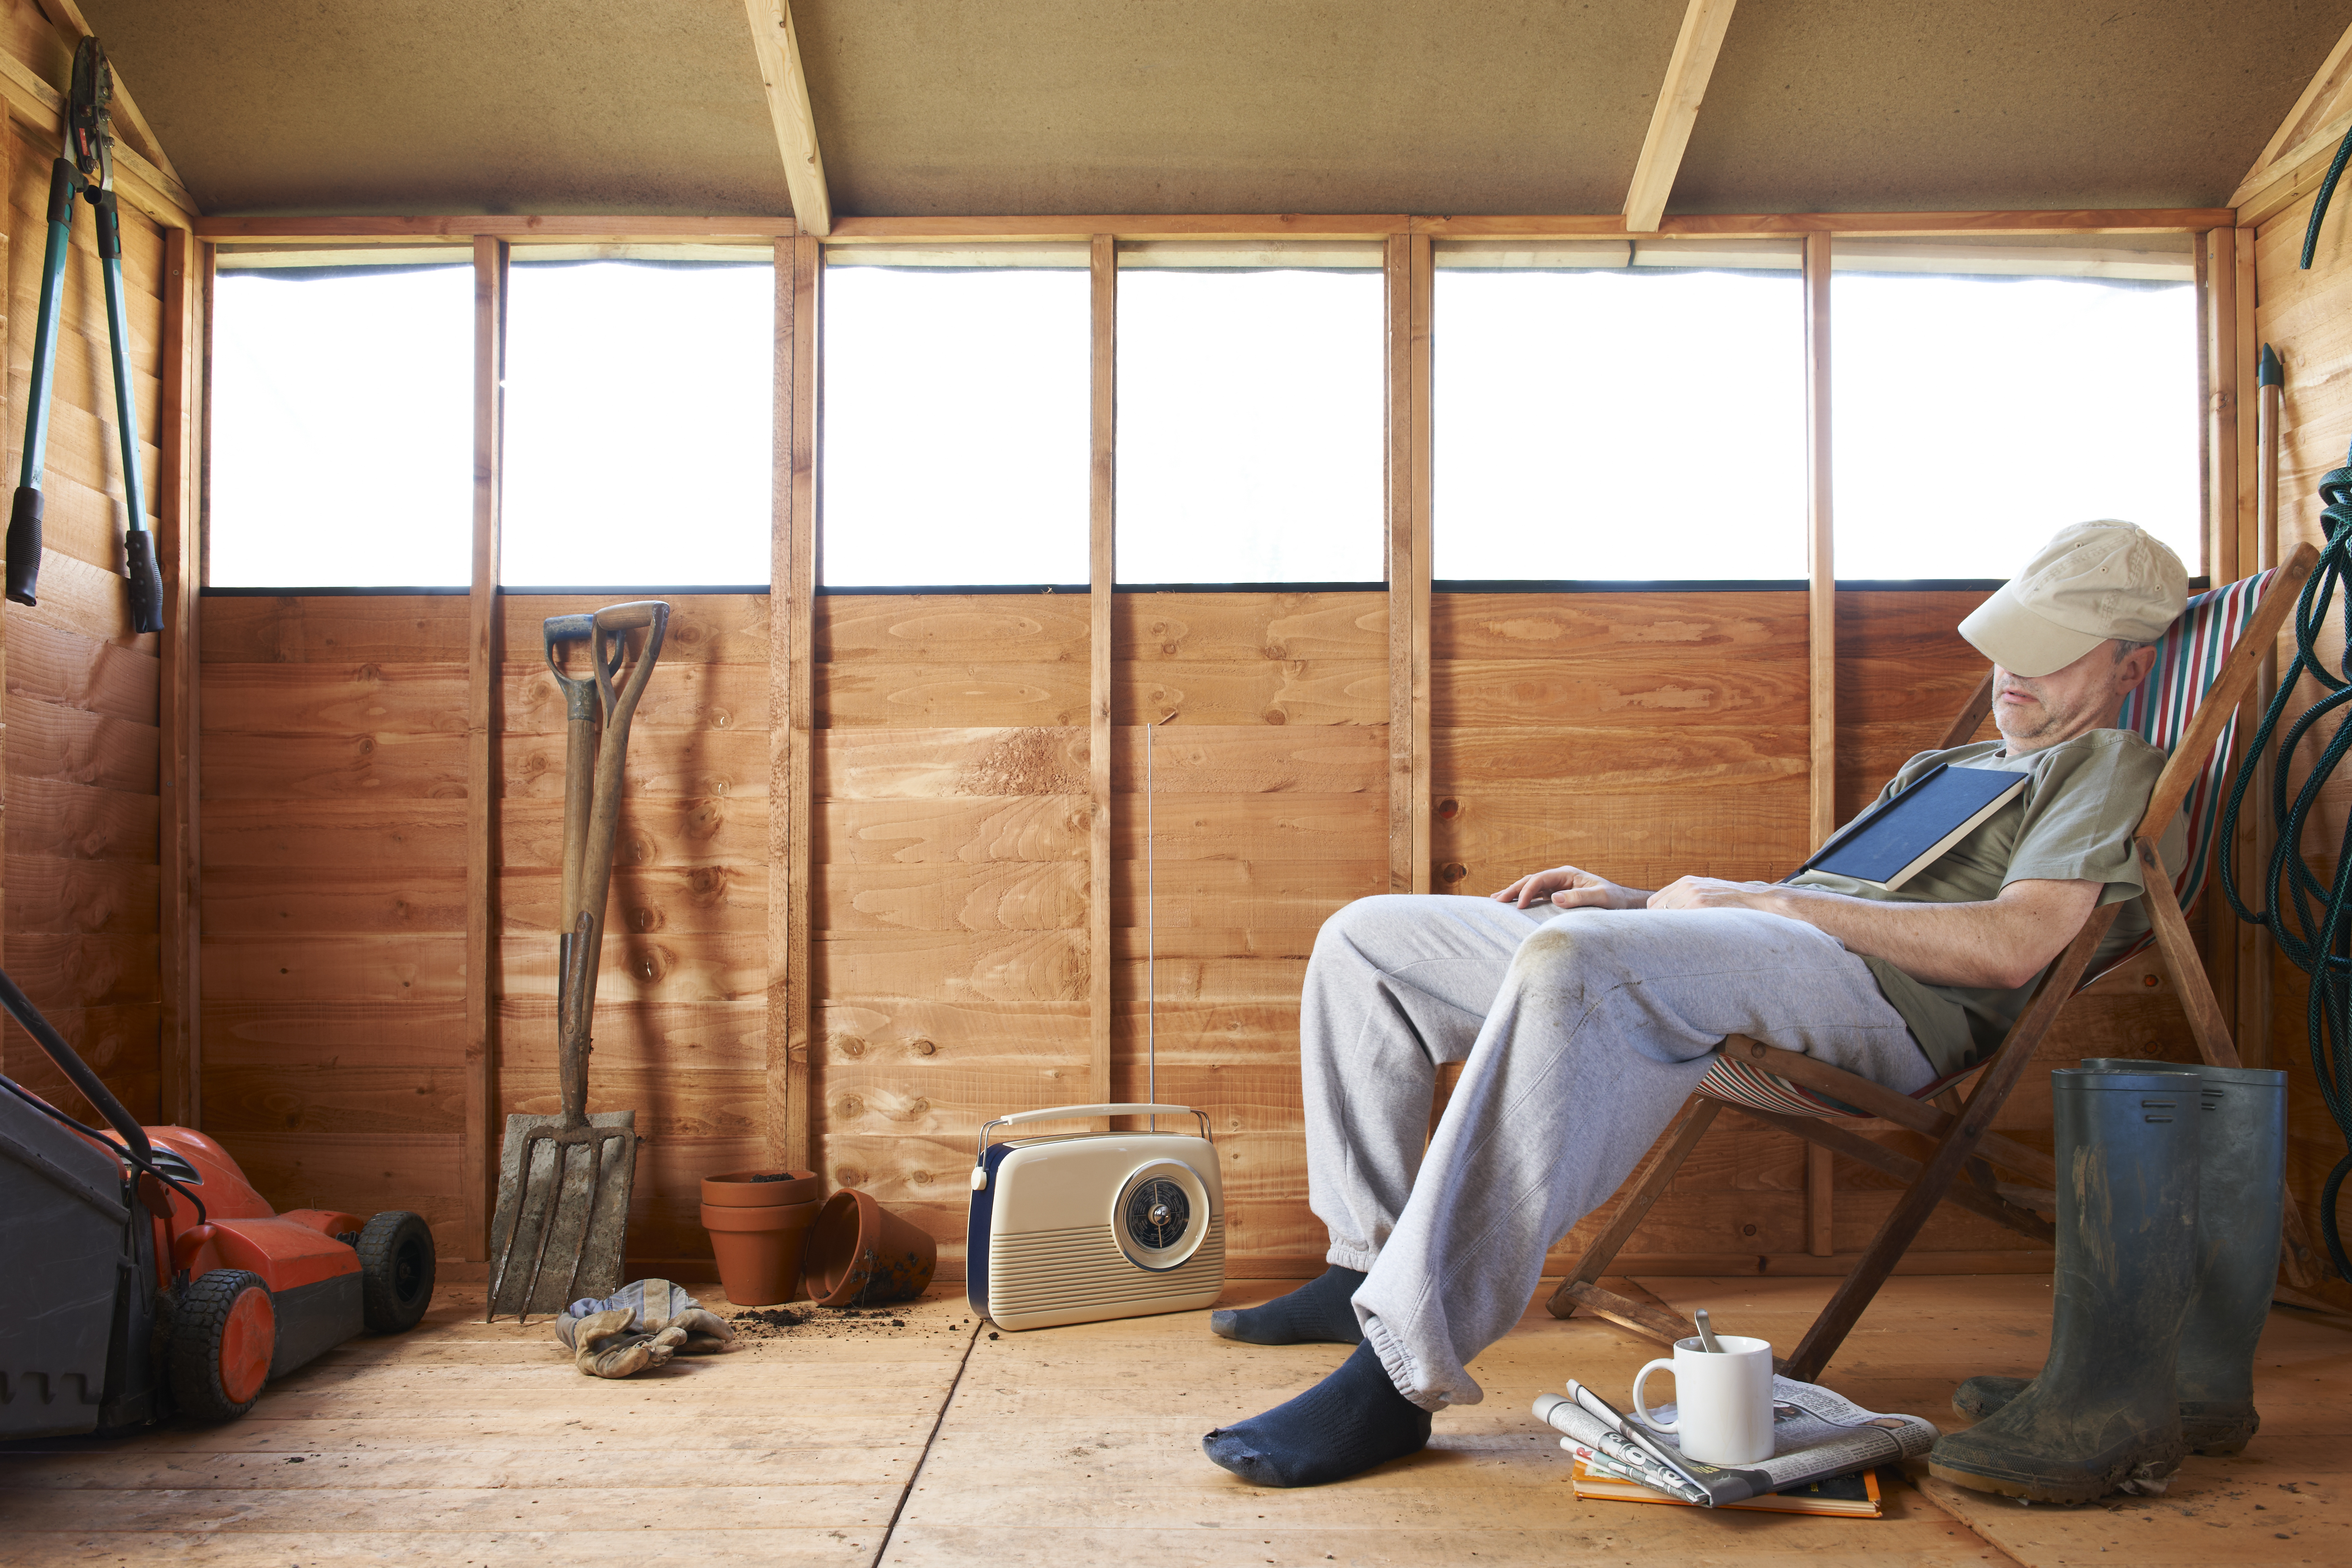 how to insulate a shed to live in step by step guide. Black Bedroom Furniture Sets. Home Design Ideas